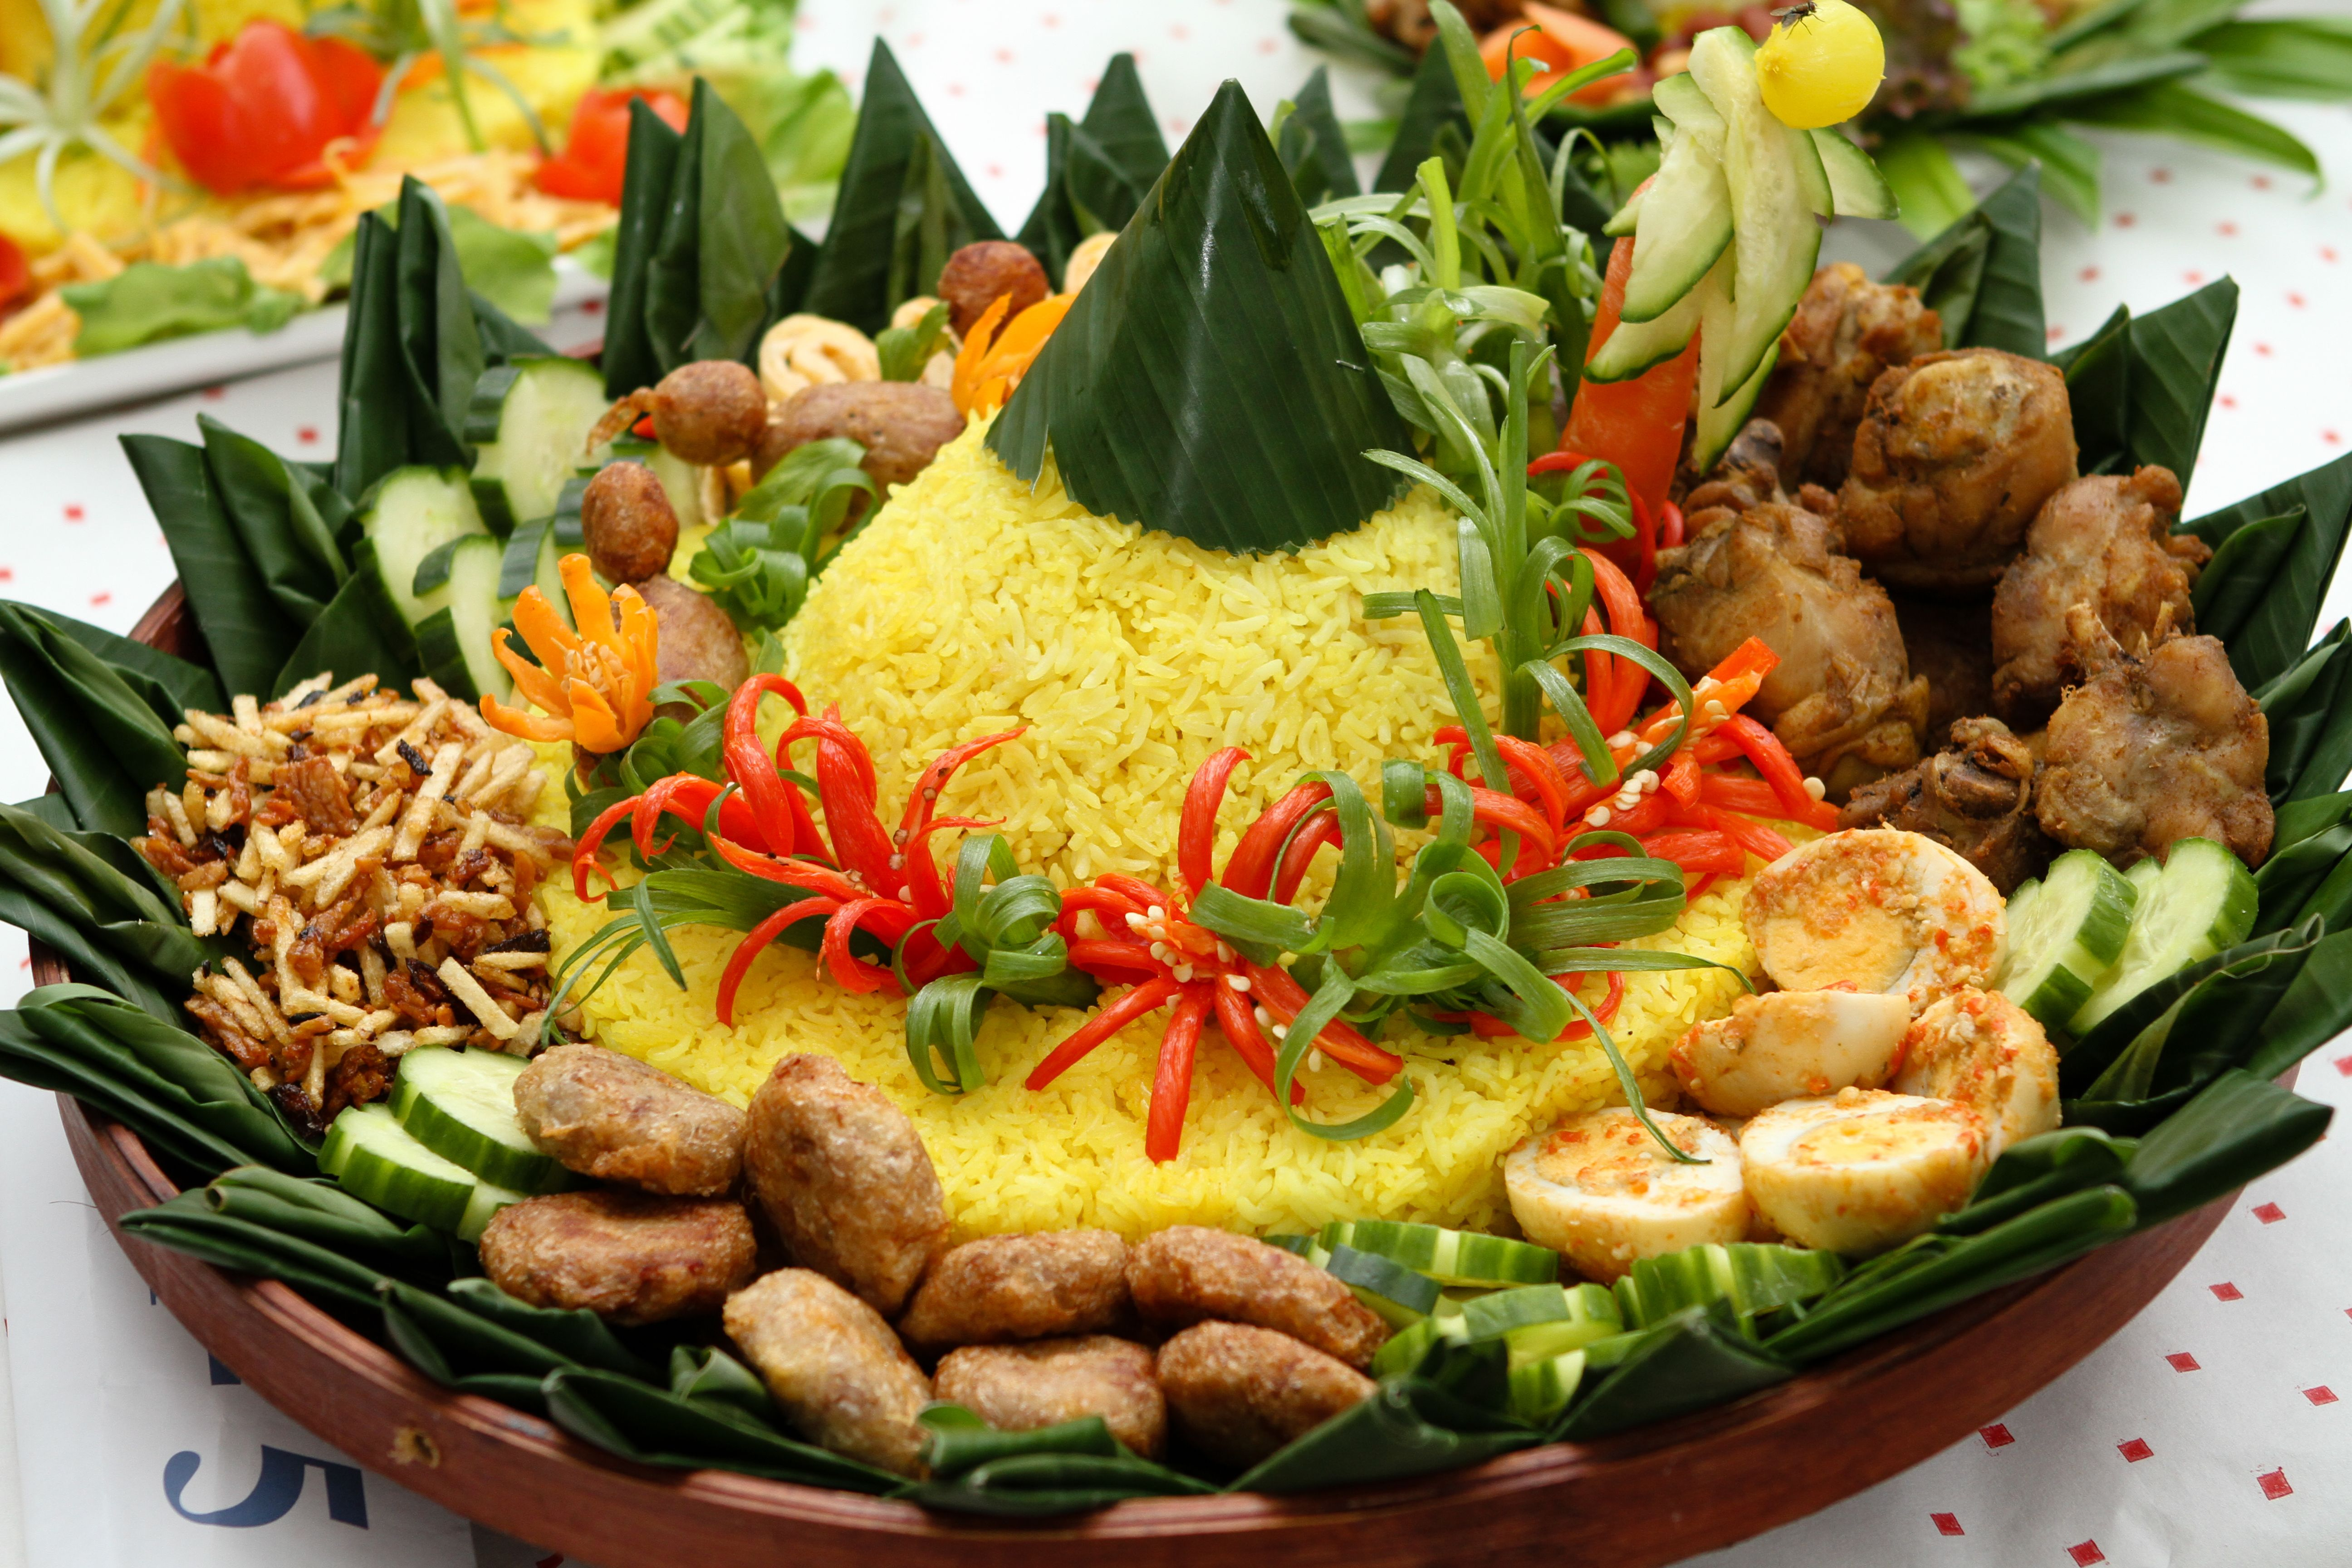 Tumpeng Indonesian Food Picture 4975 17534 Wallpaper